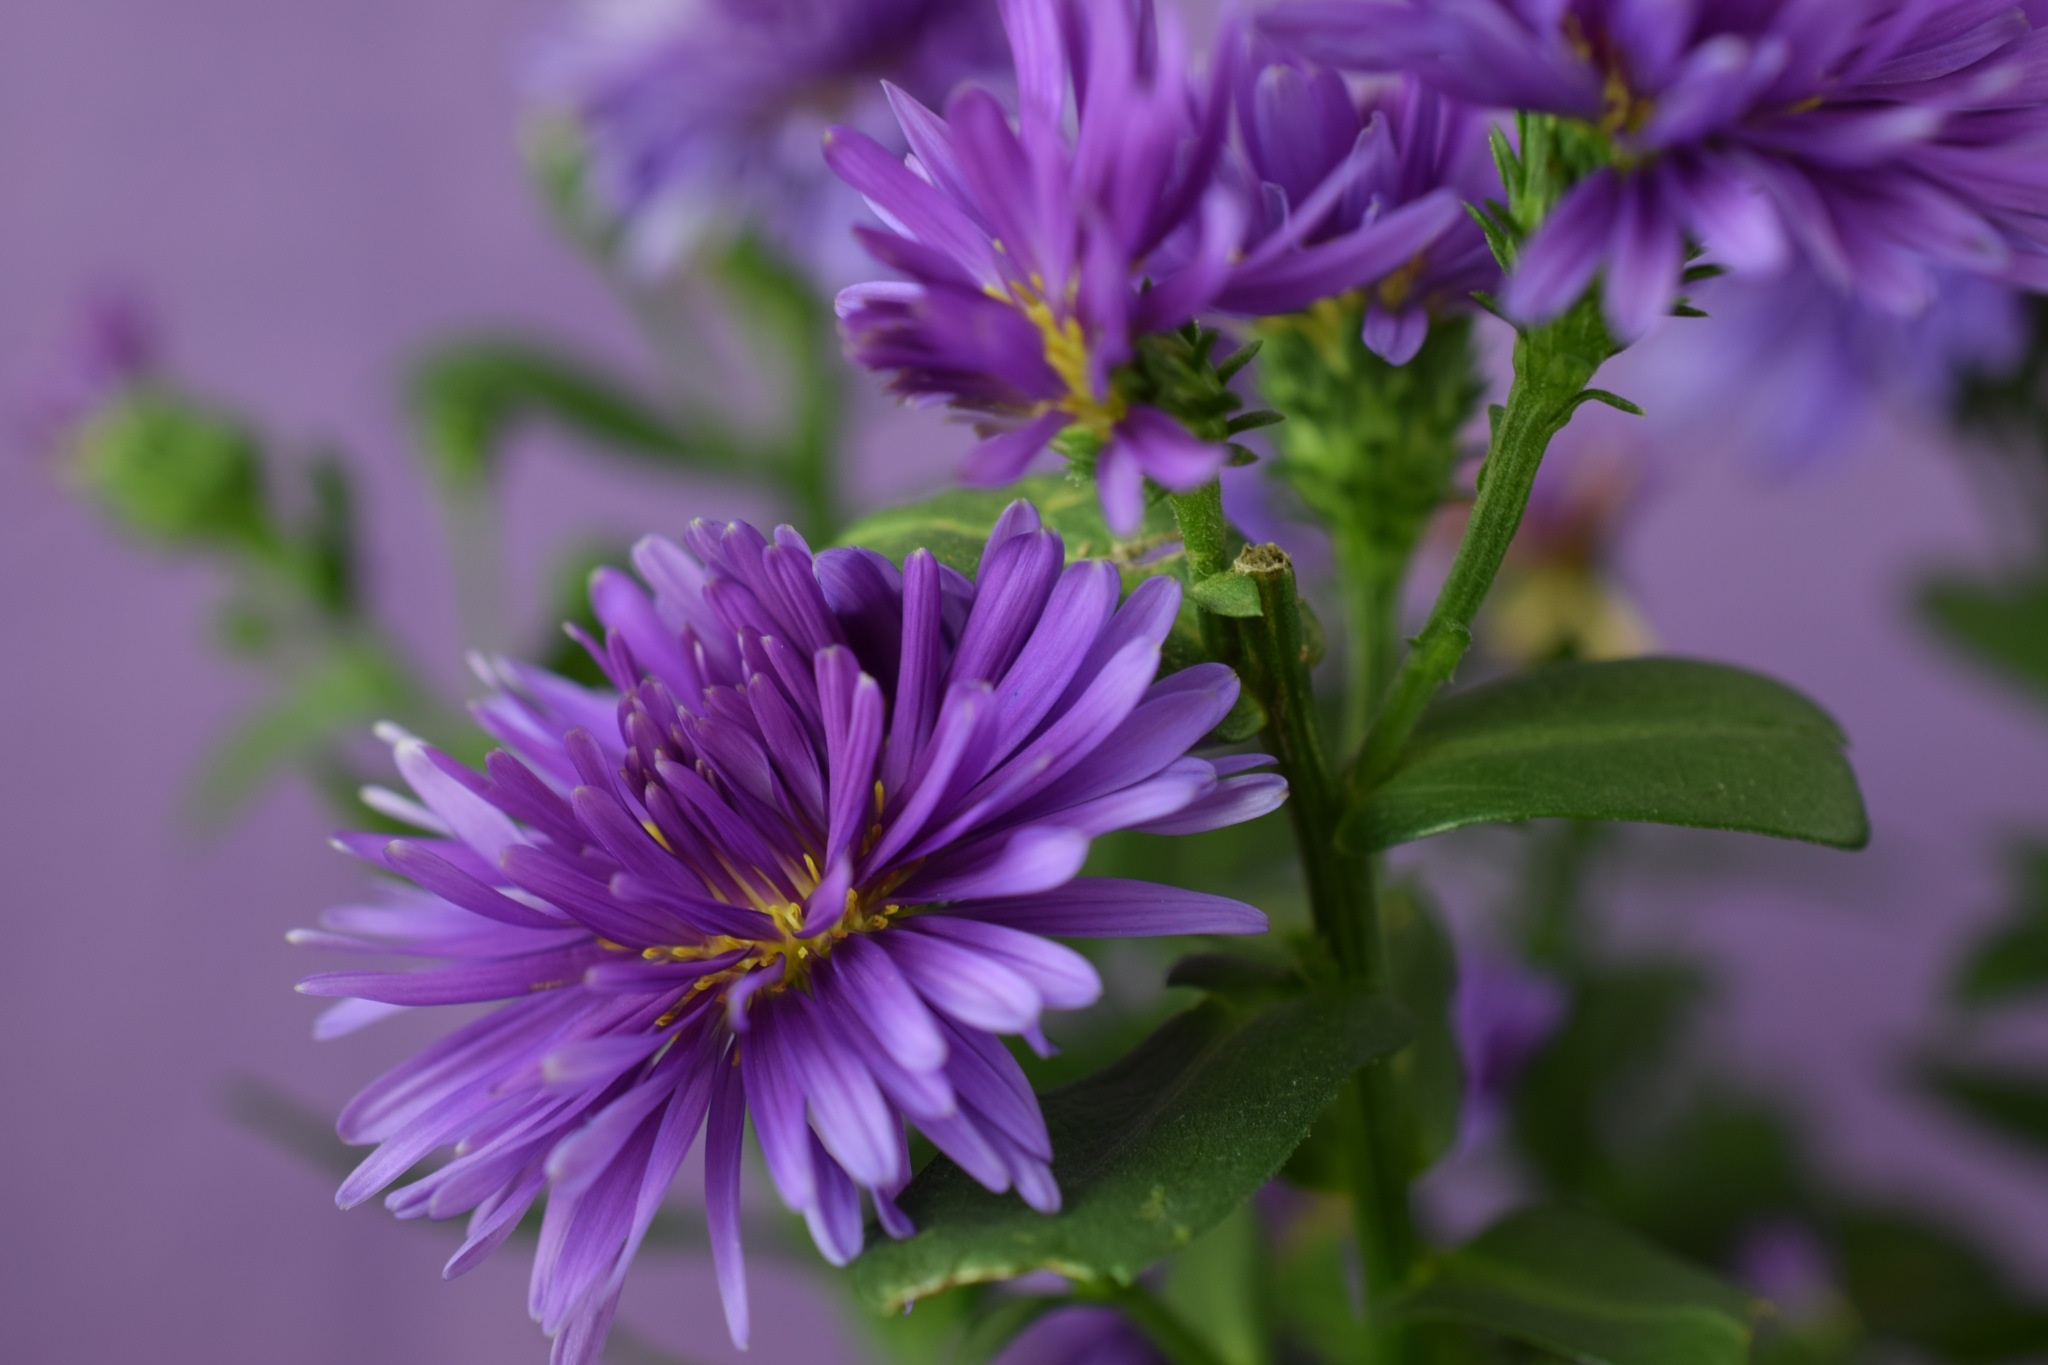 Aster victoria flower 102 by Theresia Buskas